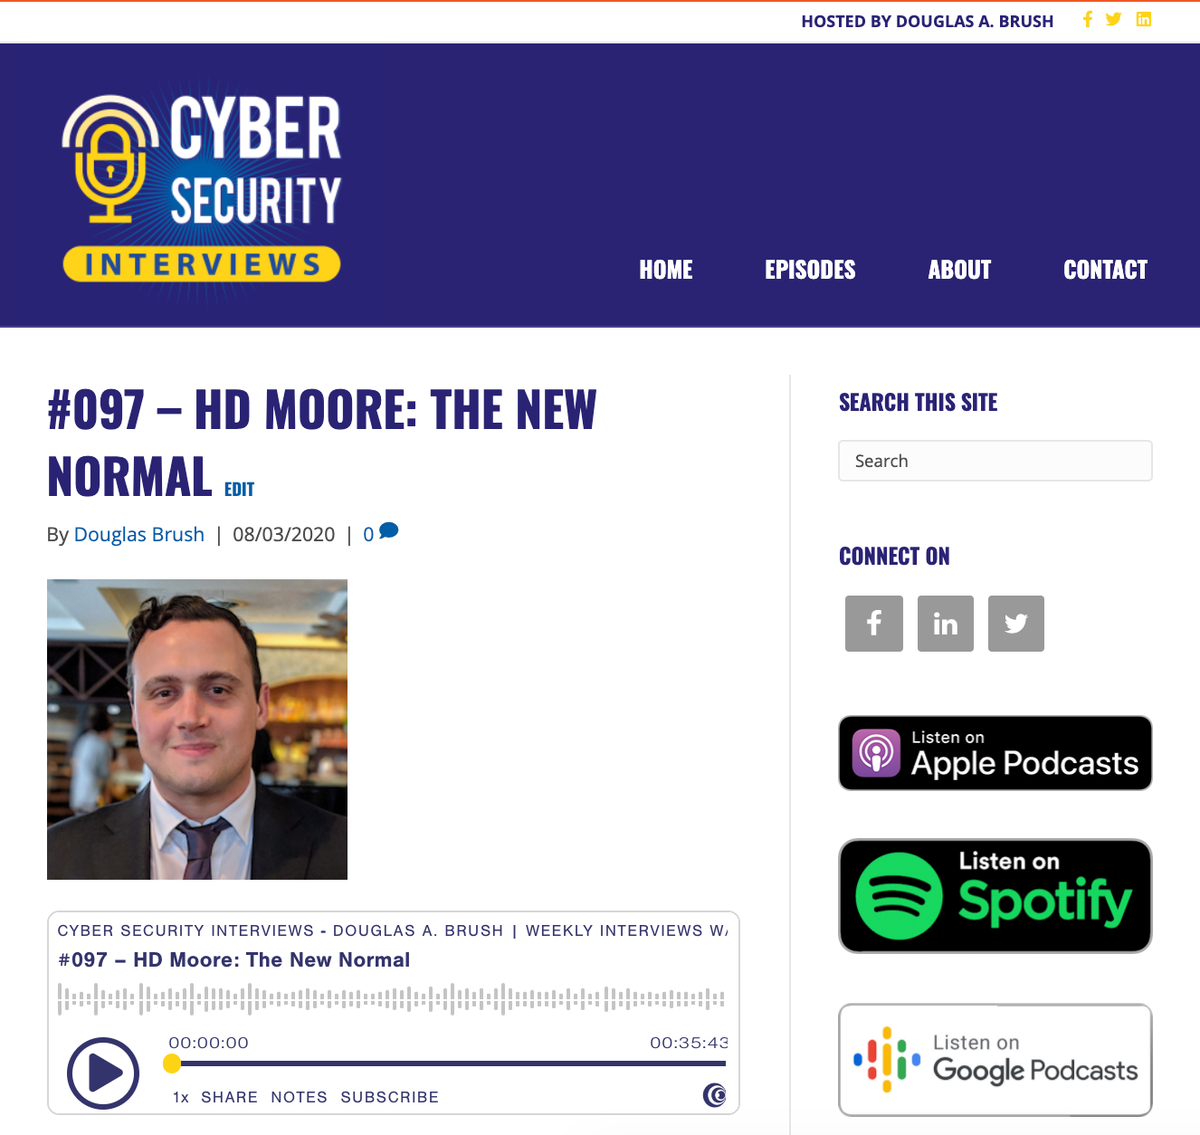 Ep. 97 of the #podcast is live with @hdmoore! https://cybersecurityinterviews.com/episodes/097-hd-moore-the-new-normal/… We discuss starting with BBSs back in the day, starting the @metasploit, project Sonar, his development of @RumbleDiscovery, fingerprinting networks, jump boxes in #IoT networks, and so much more.pic.twitter.com/DPGj6el79e